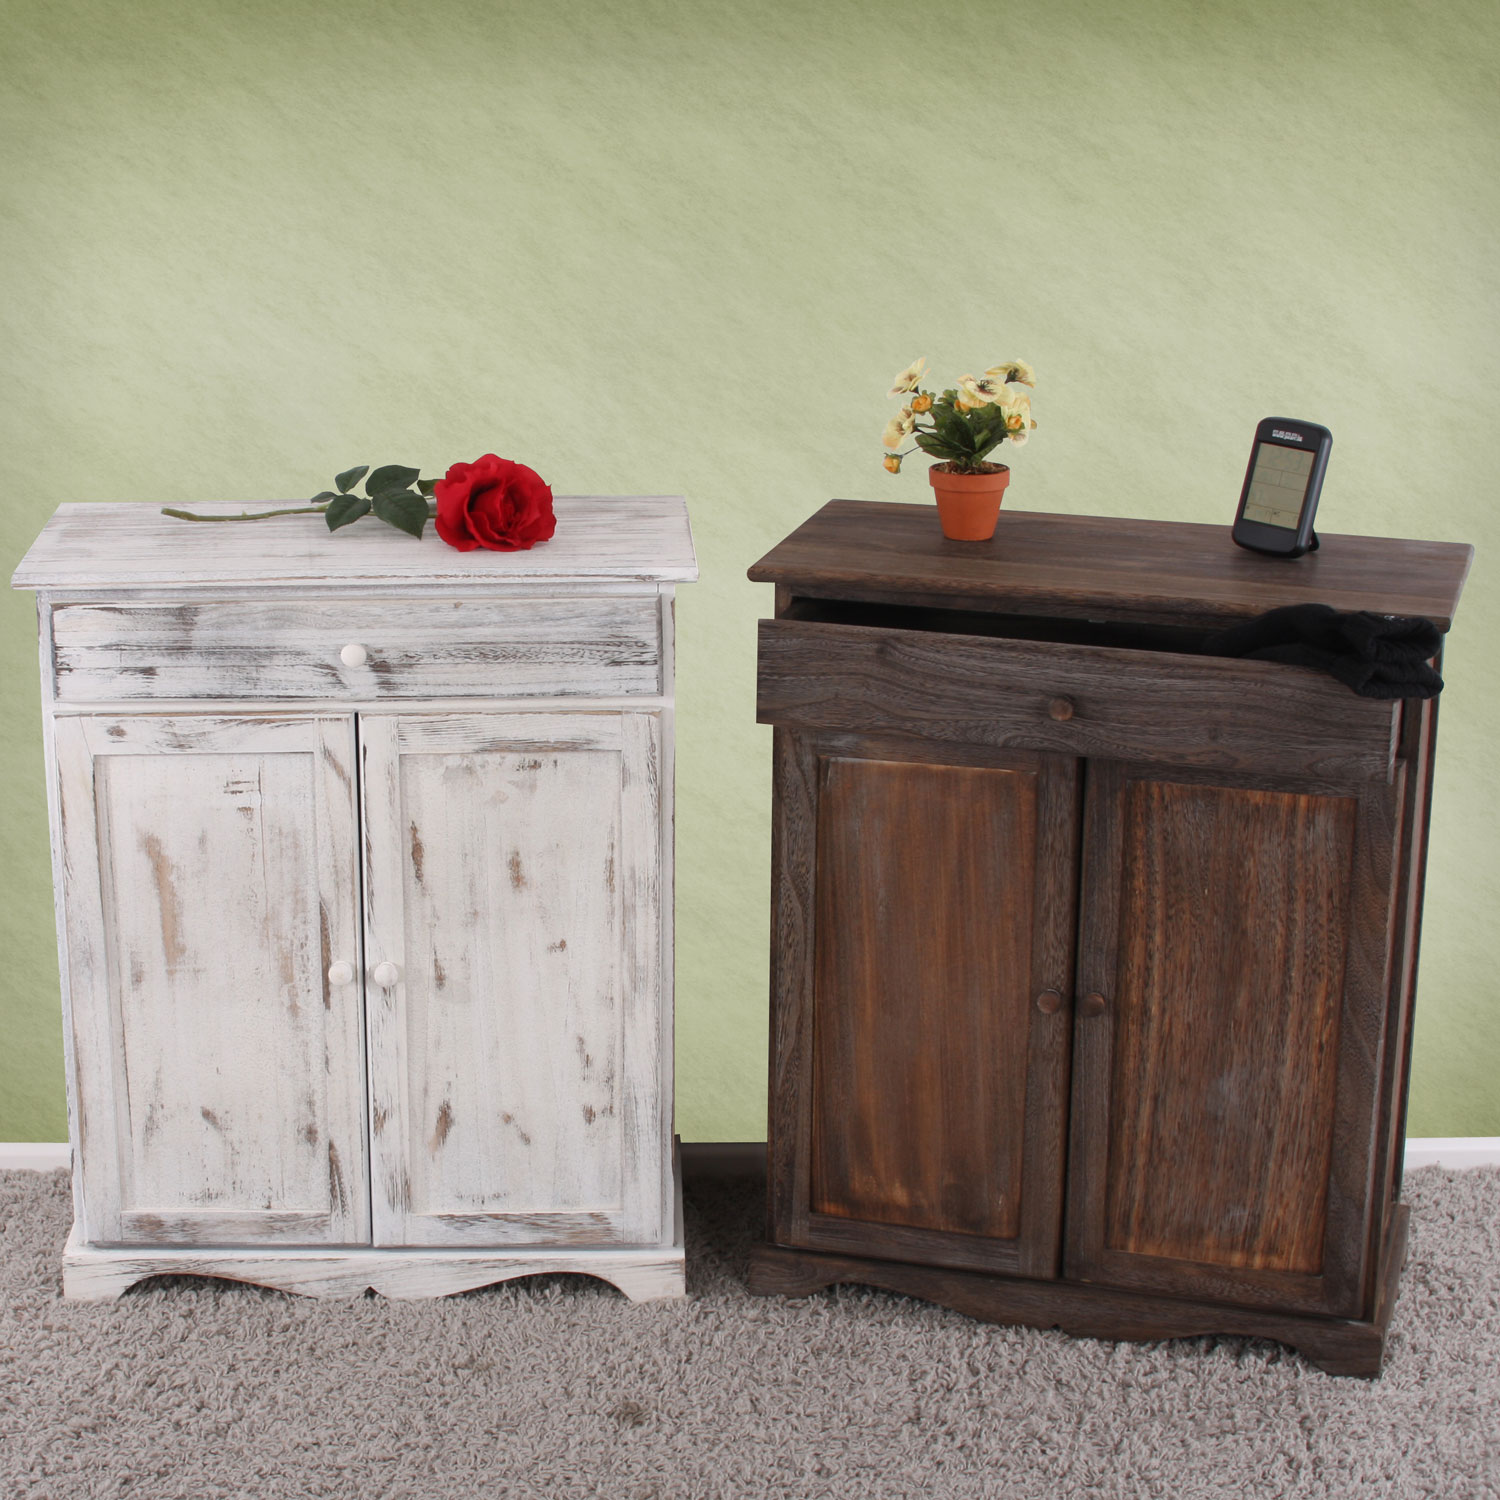 kommode schrank 78x66x33cm shabby look vintage wei. Black Bedroom Furniture Sets. Home Design Ideas